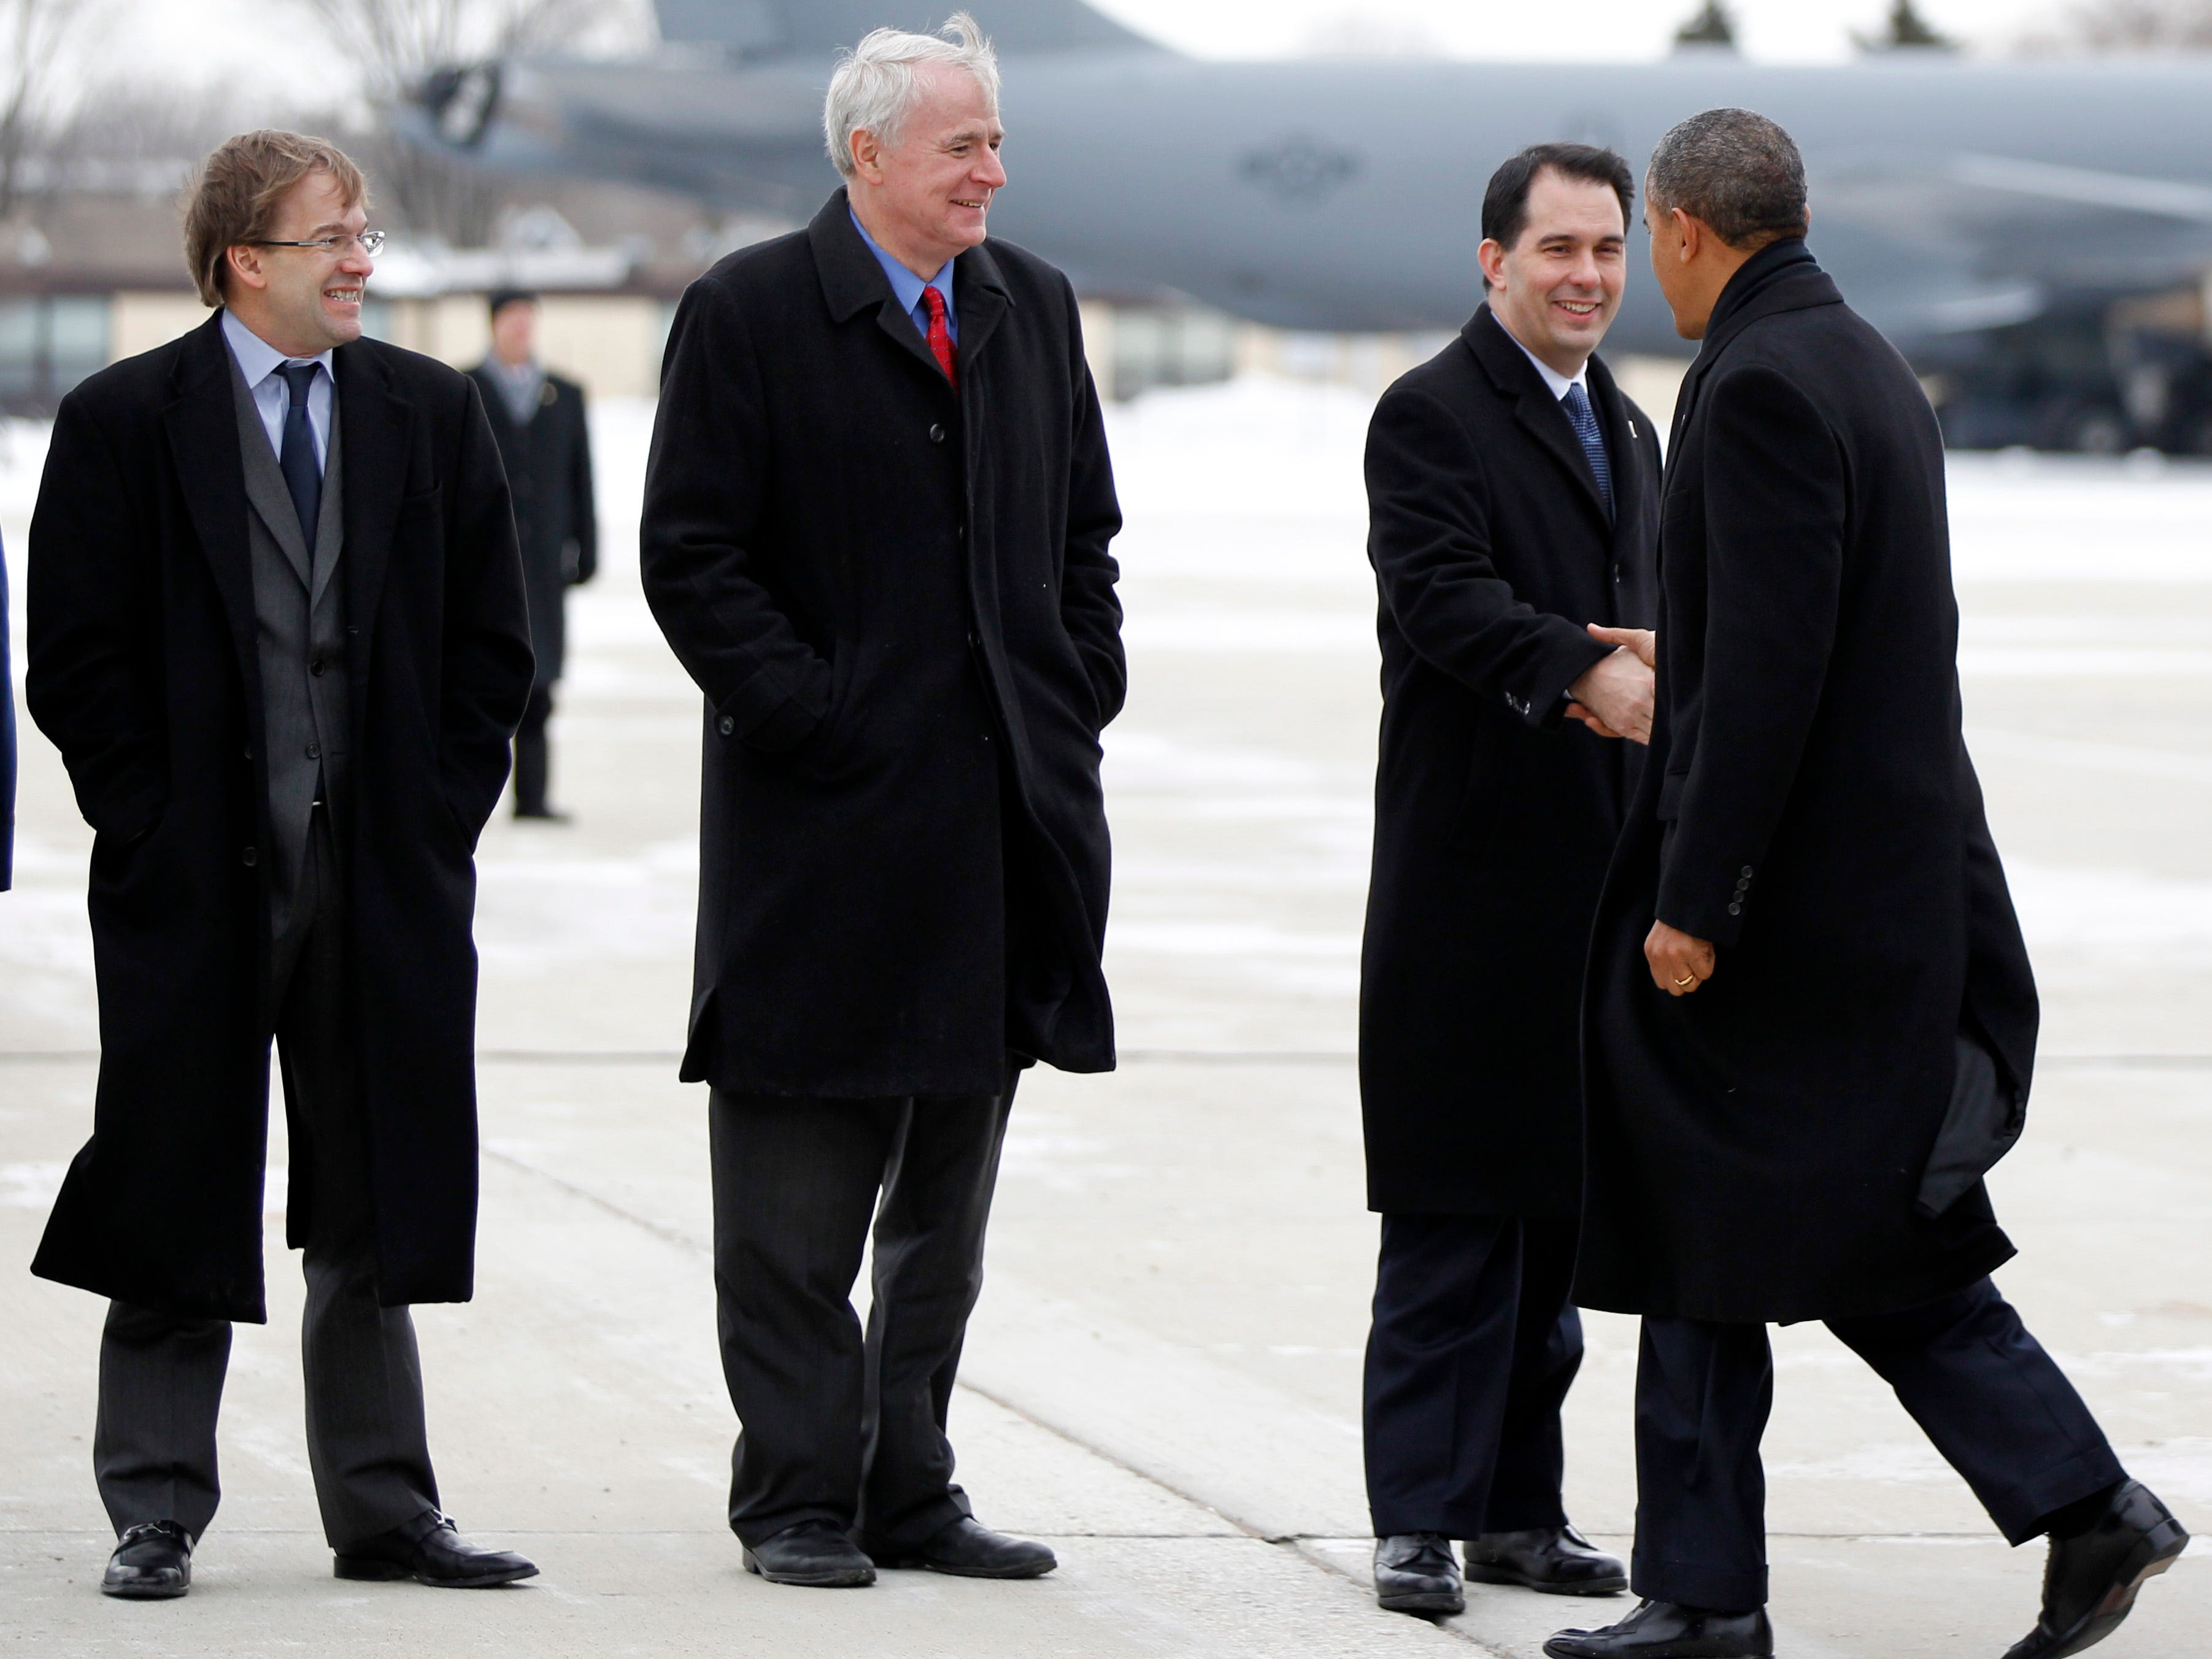 2014: President Barack Obama is greeted by Gov. Scott Walker, Milwaukee County Executive Chris Abele (far left) an Milwaukee Mayor Tom Barrett at General Mitchell International Airport on January 30. President Obama spoke at GE Energy in Waukesha. The visit is part of a four-state tour the president is making following his State of the Union speech.